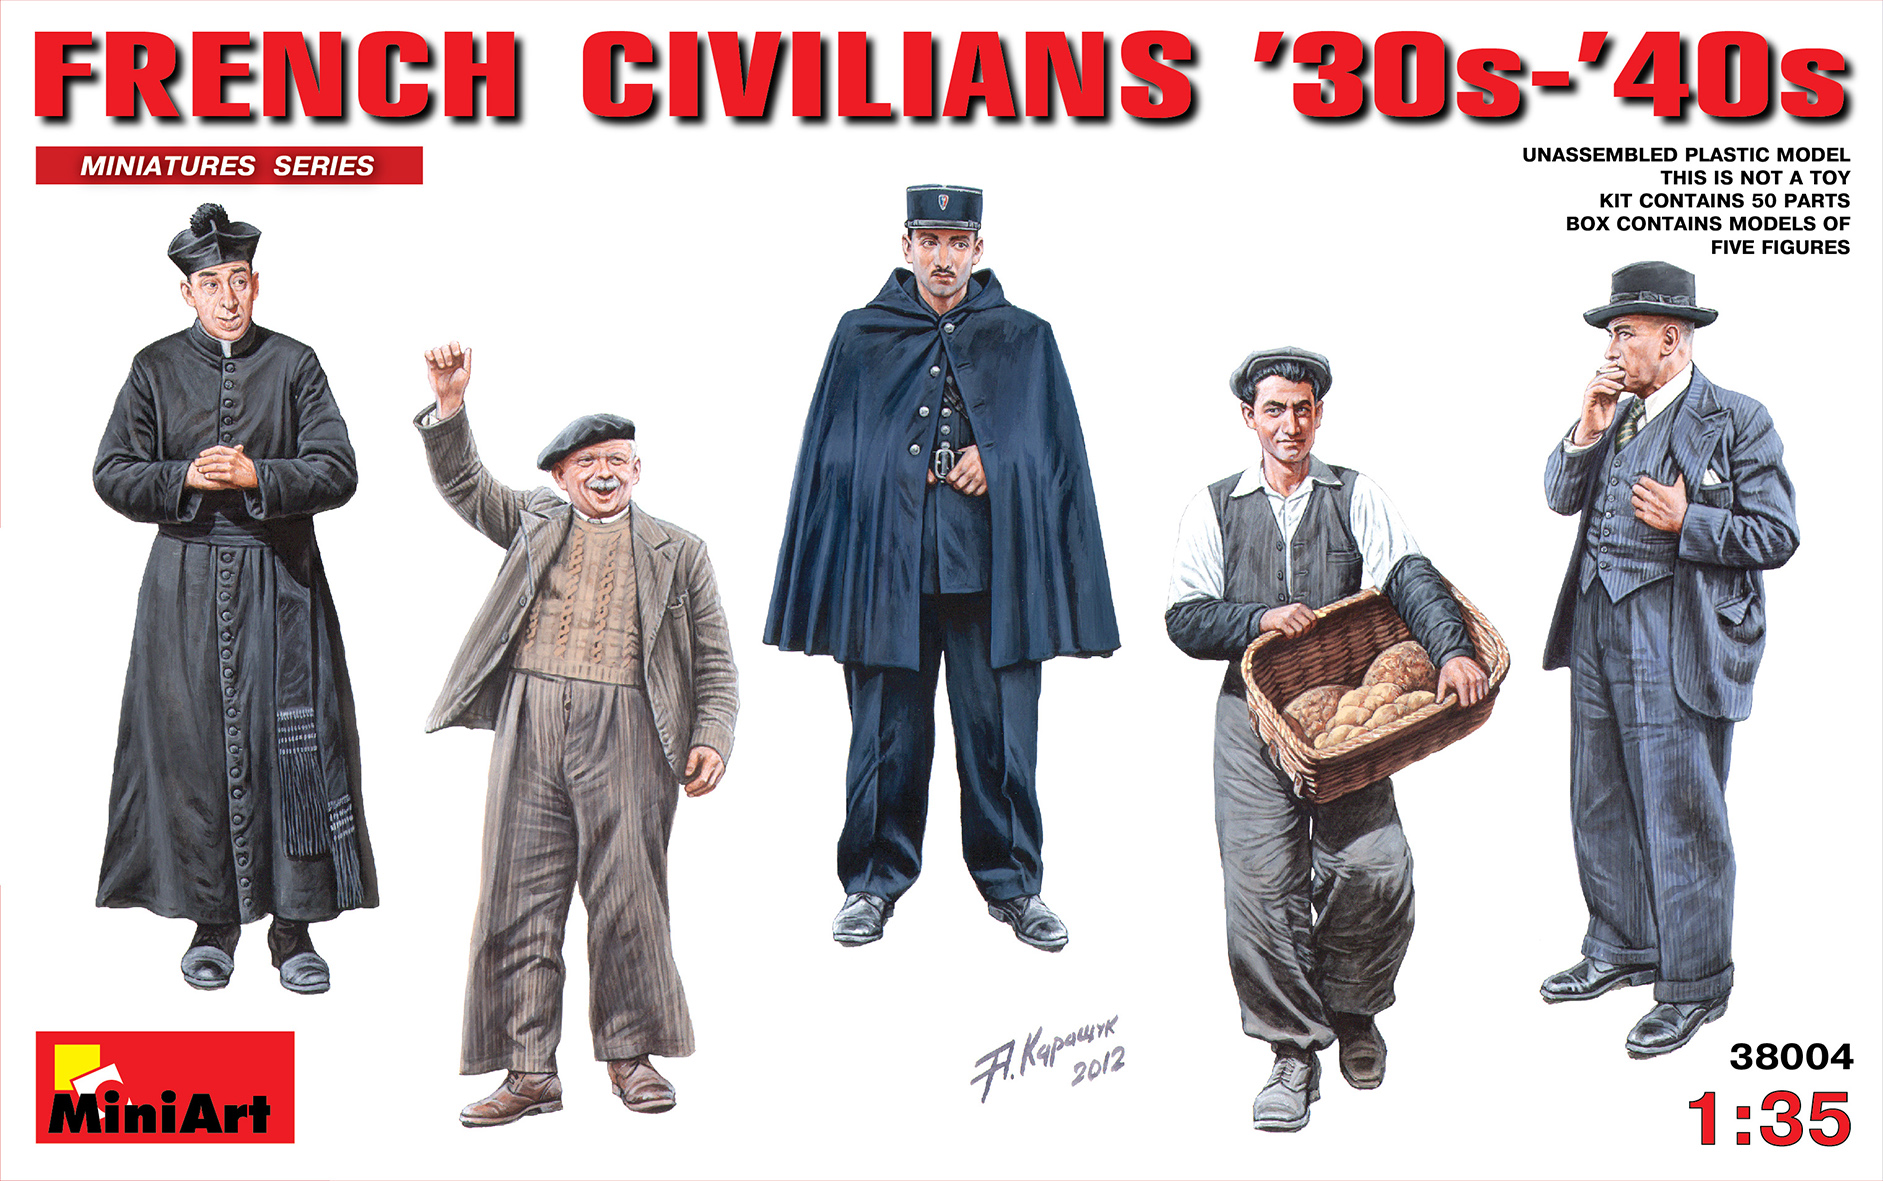 MiniArt 1/35 FRENCH CIVILIANS 30г.-40г. # 38004